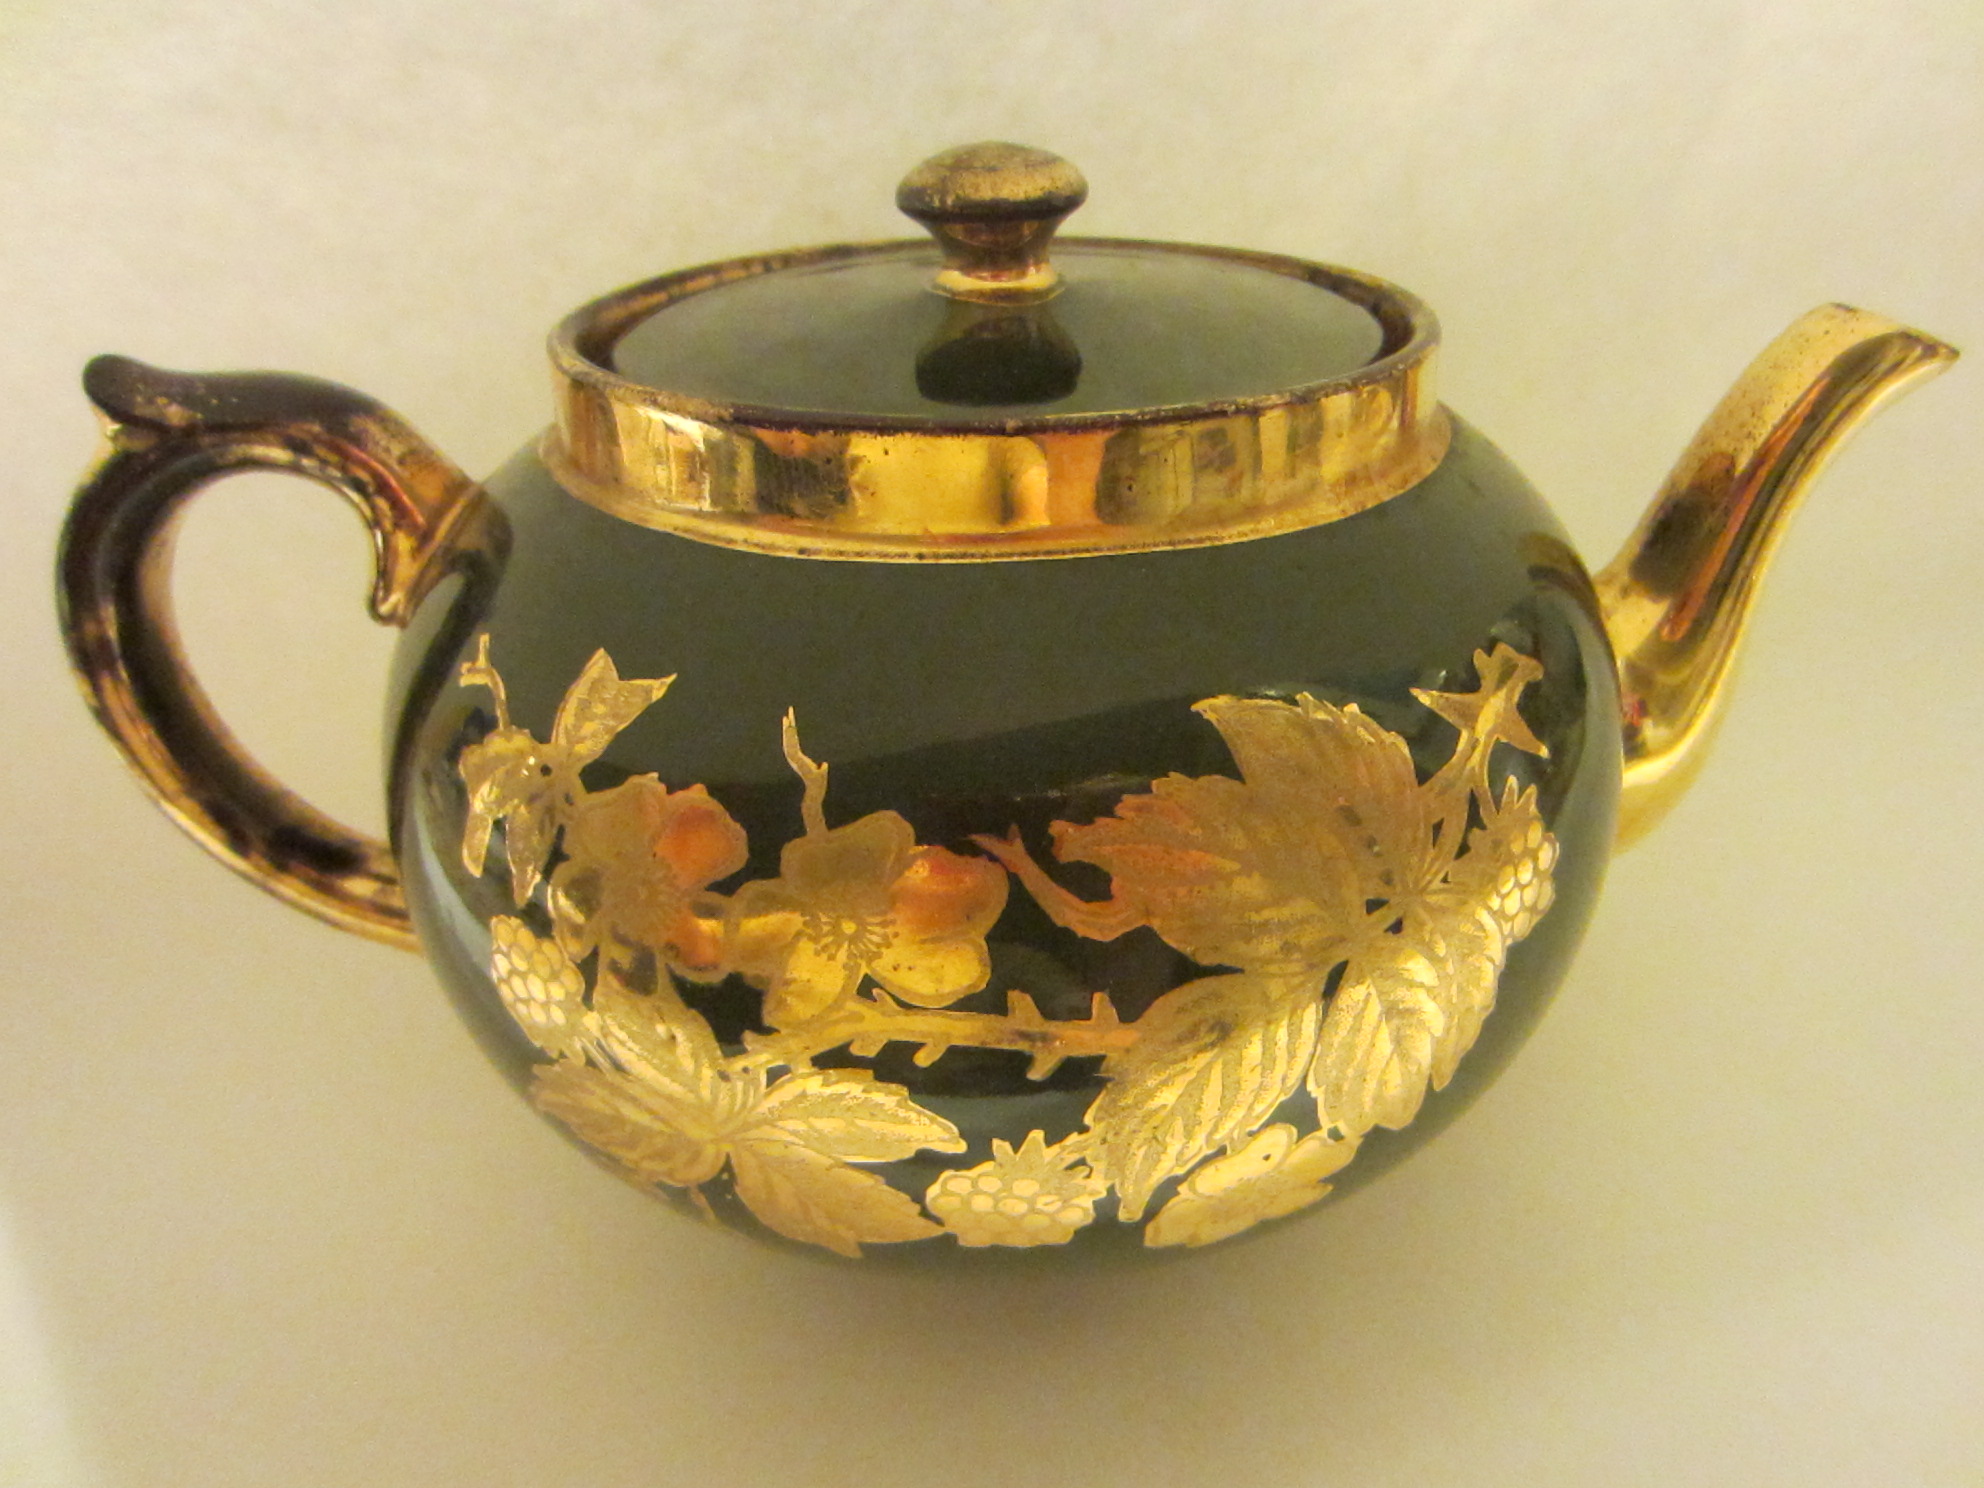 Staffordshire England Teapot Gold Flowers Sage Green